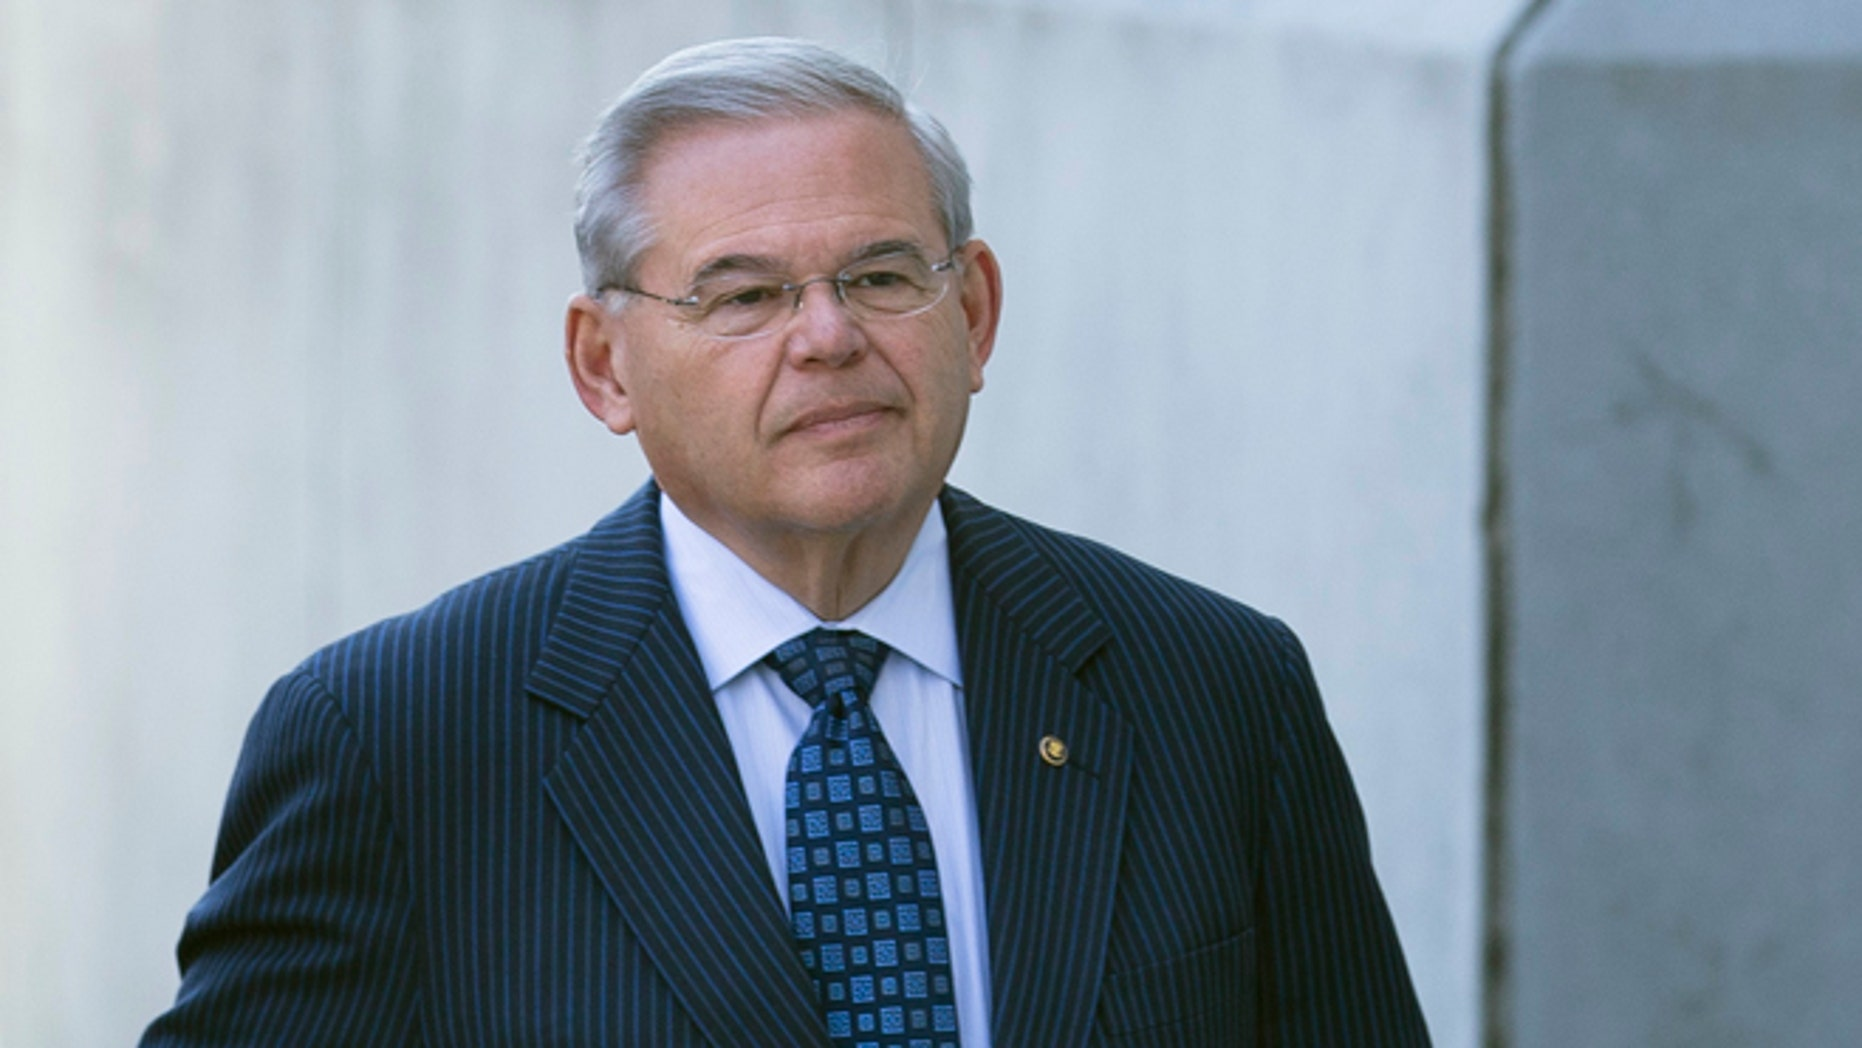 U.S. Sen. Bob Menendez arrives at Newark federal court, Thursday, April 2, 2015, in Newark, N.J. Menendez, the top Democrat on the U.S. Senate Foreign Relations Committee, was indicted Wednesday on corruption charges. A federal grand jury indictment accuses Menendez of using the power of his Senate seat to benefit Salomon Melgen, a wealthy Florida eye doctor who prosecutors say provided the senator with luxury vacations, airline travel, golf trips and tens of thousands of dollars in contributions to a legal defense fund. (AP Photo/John Minchillo)